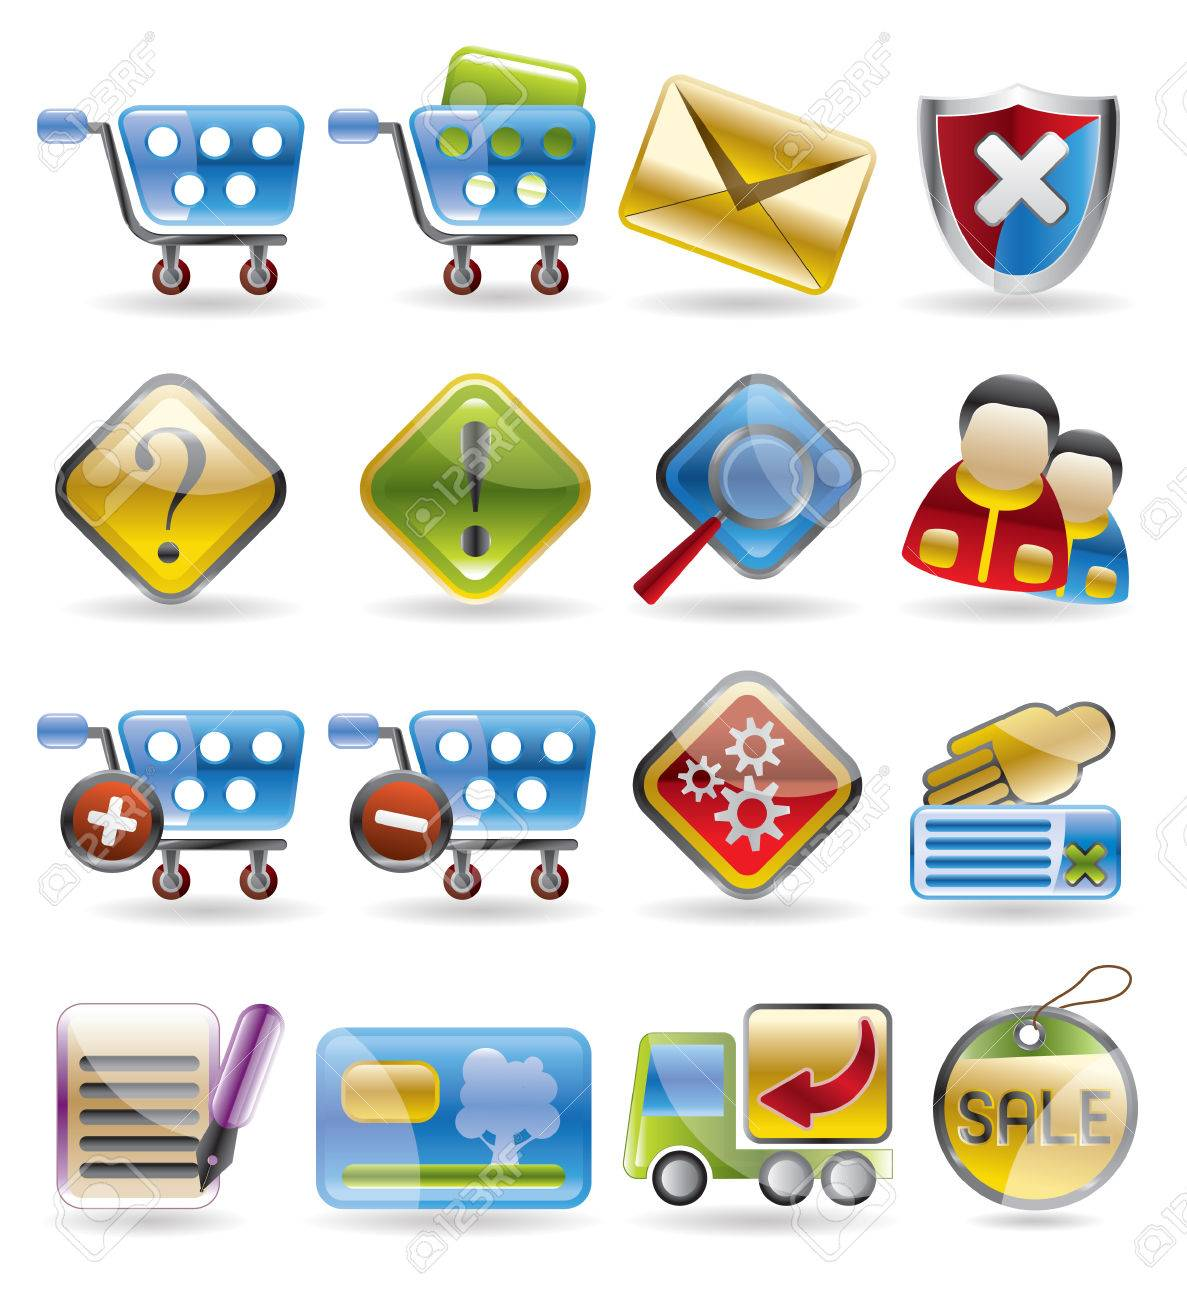 Online Shop Icon Set Stock Vector - 4397204